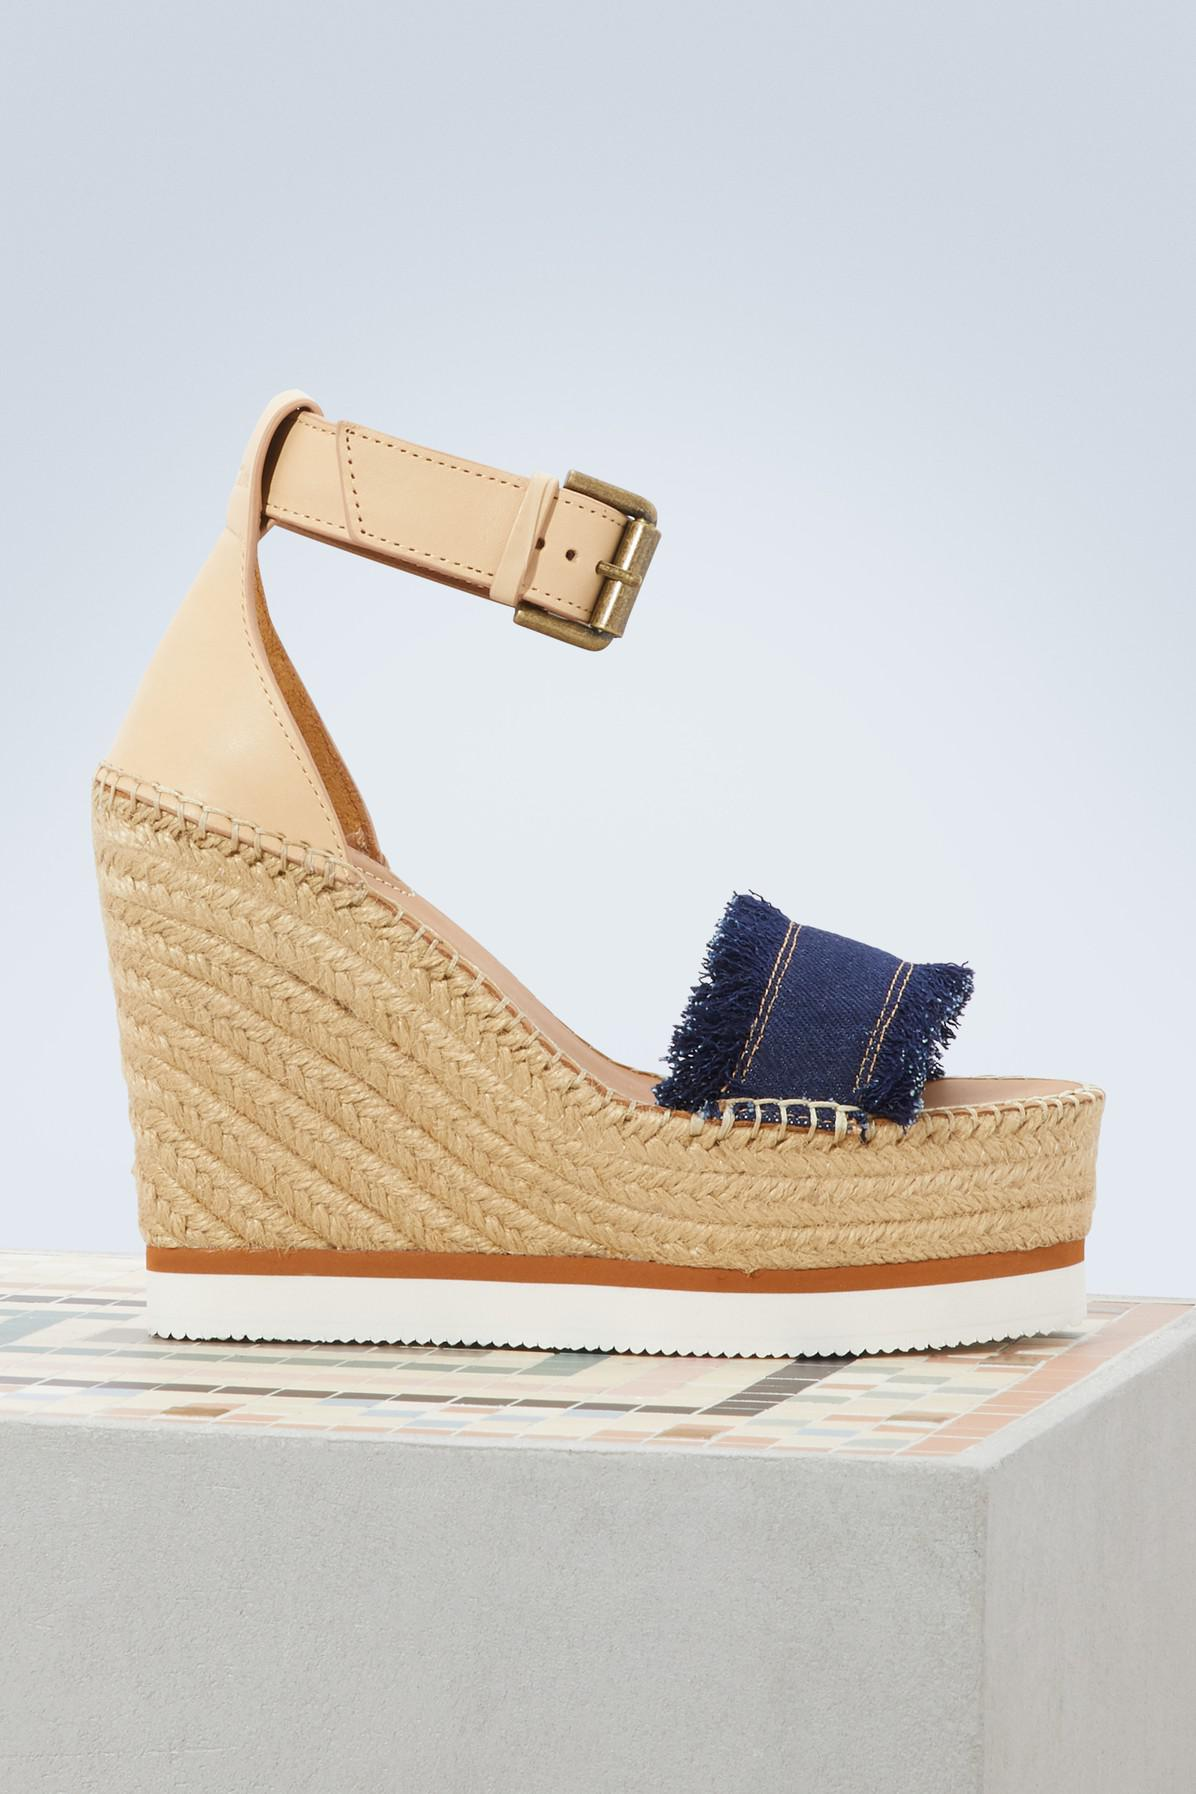 fee879cfed5 Lyst - Espadrilles compensées Glyn See By Chloé